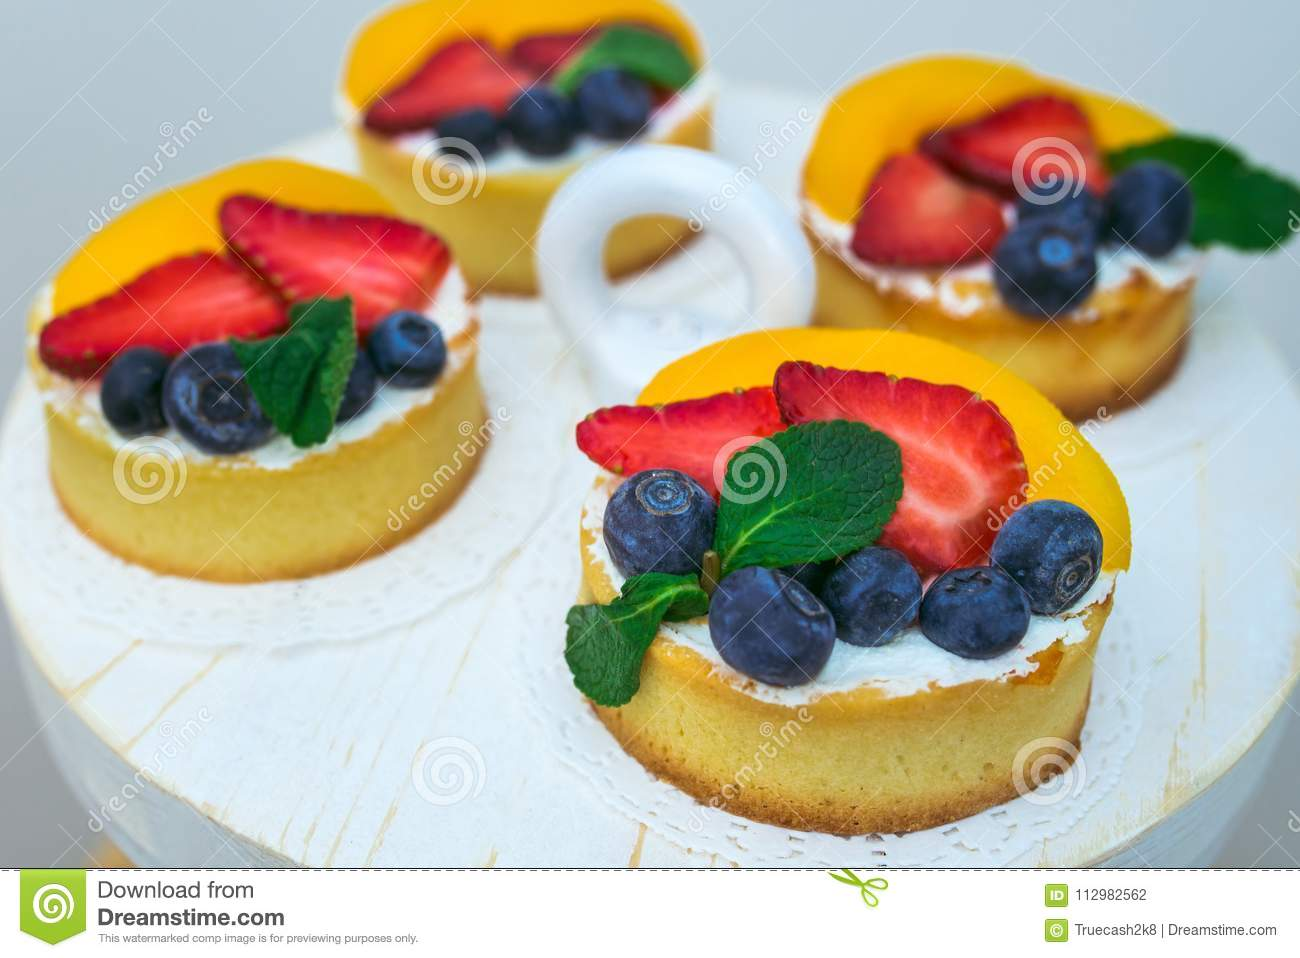 Sweet Delicious biscuit cakes with fresh strawberries and blueberries beautifully decorated